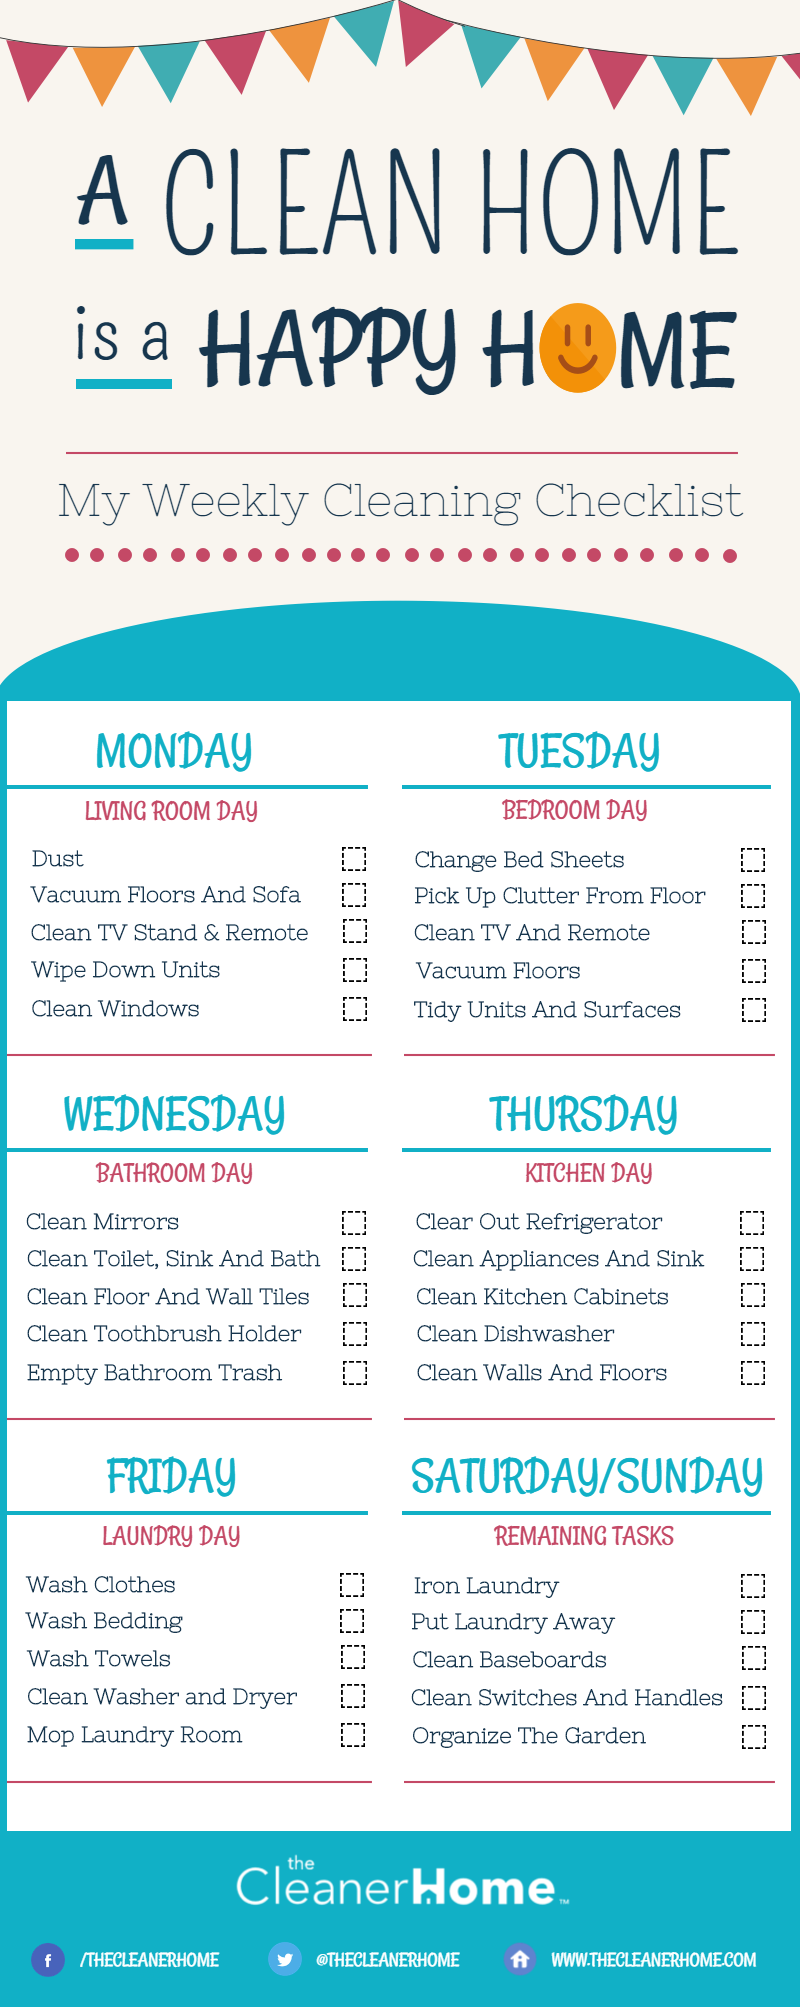 Weekly House Cleaning Checklist | The Cleaner Home